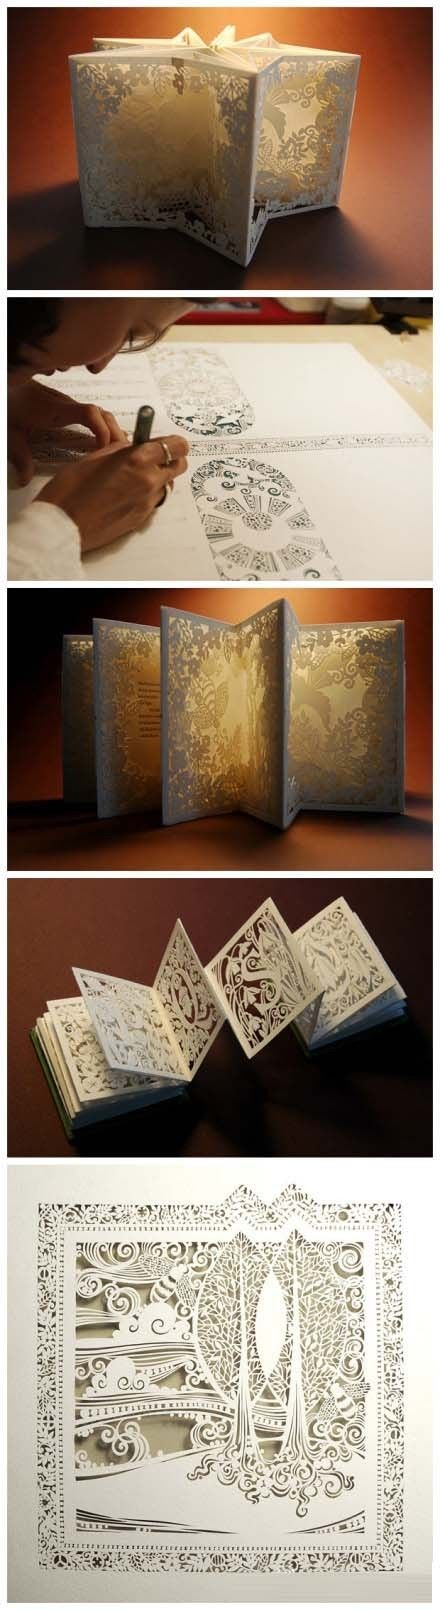 Papercraft - wish I knew the artist -- was thinking of pinning to my DIY board! :D cause, yeah...